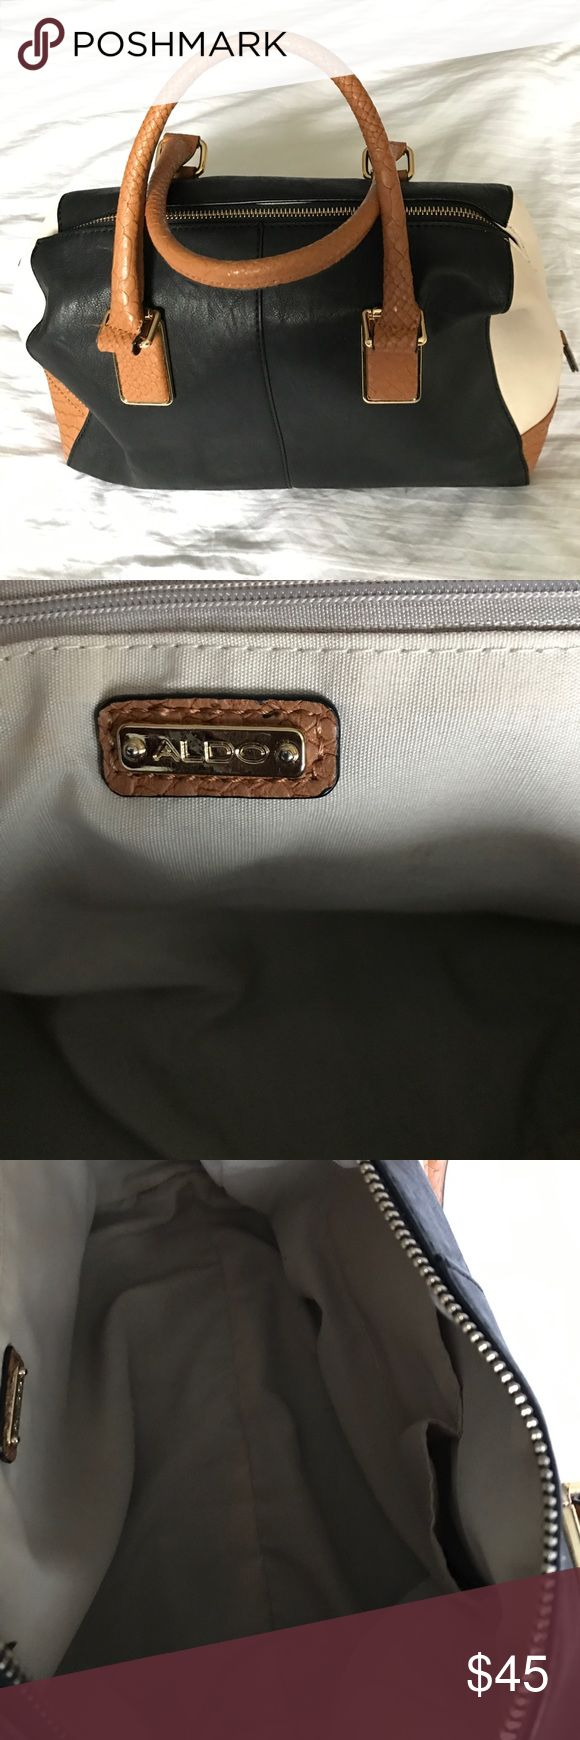 Aldo bag In good used condition only use a couple of times Aldo Bags Satchels